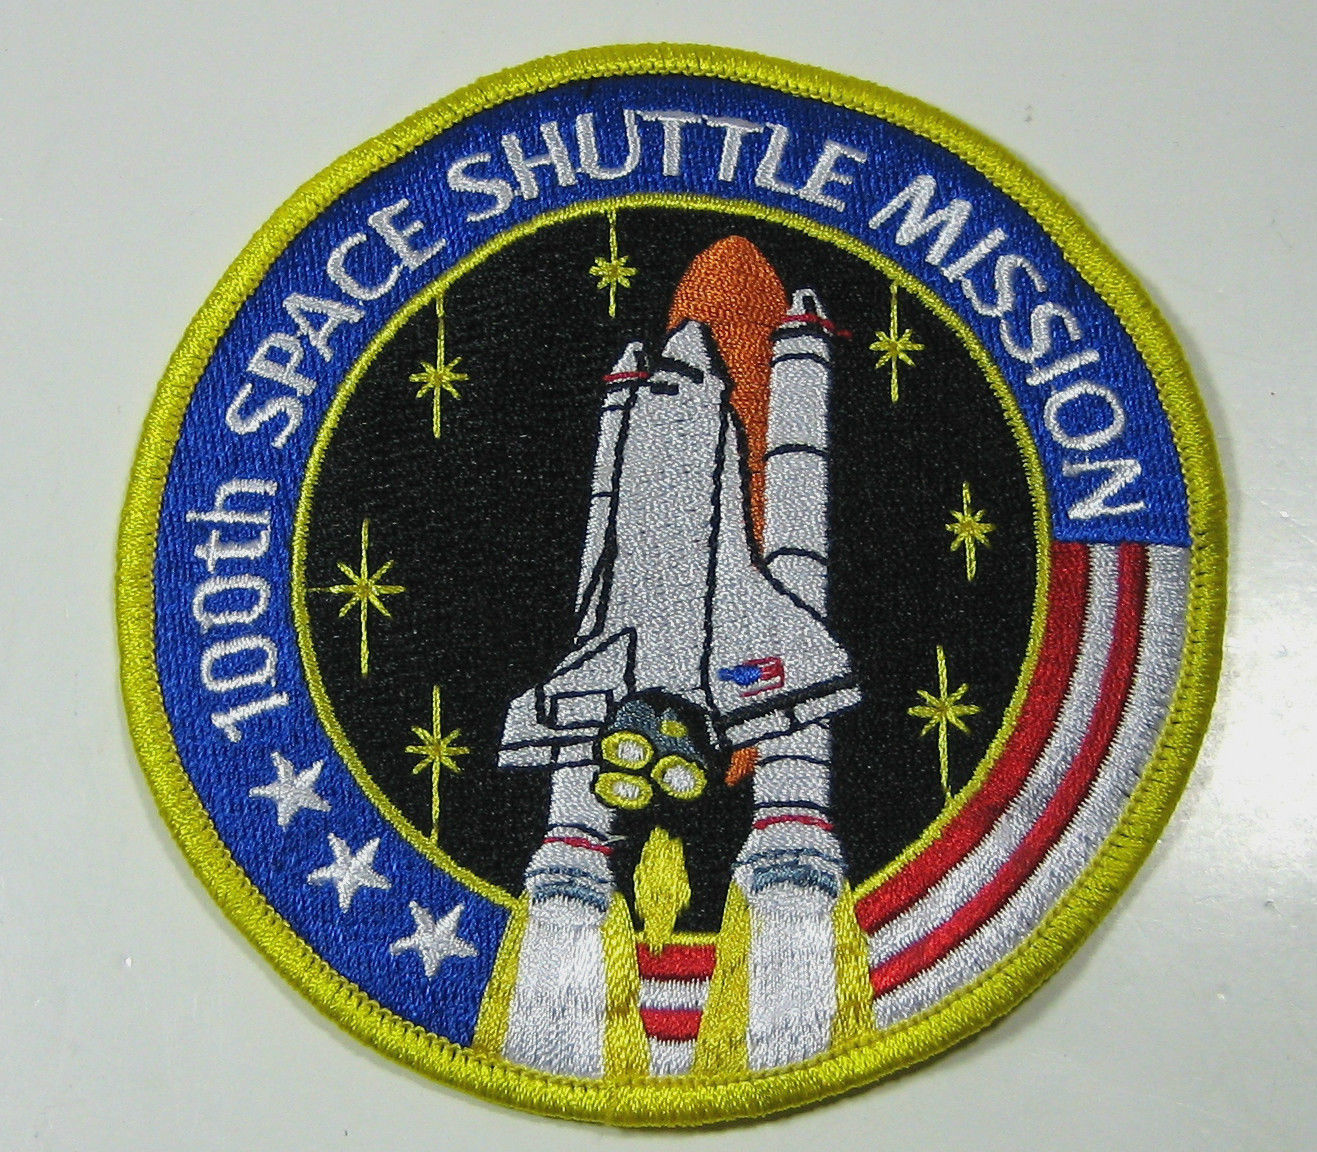 nasa 100th space shuttle mission - photo #1